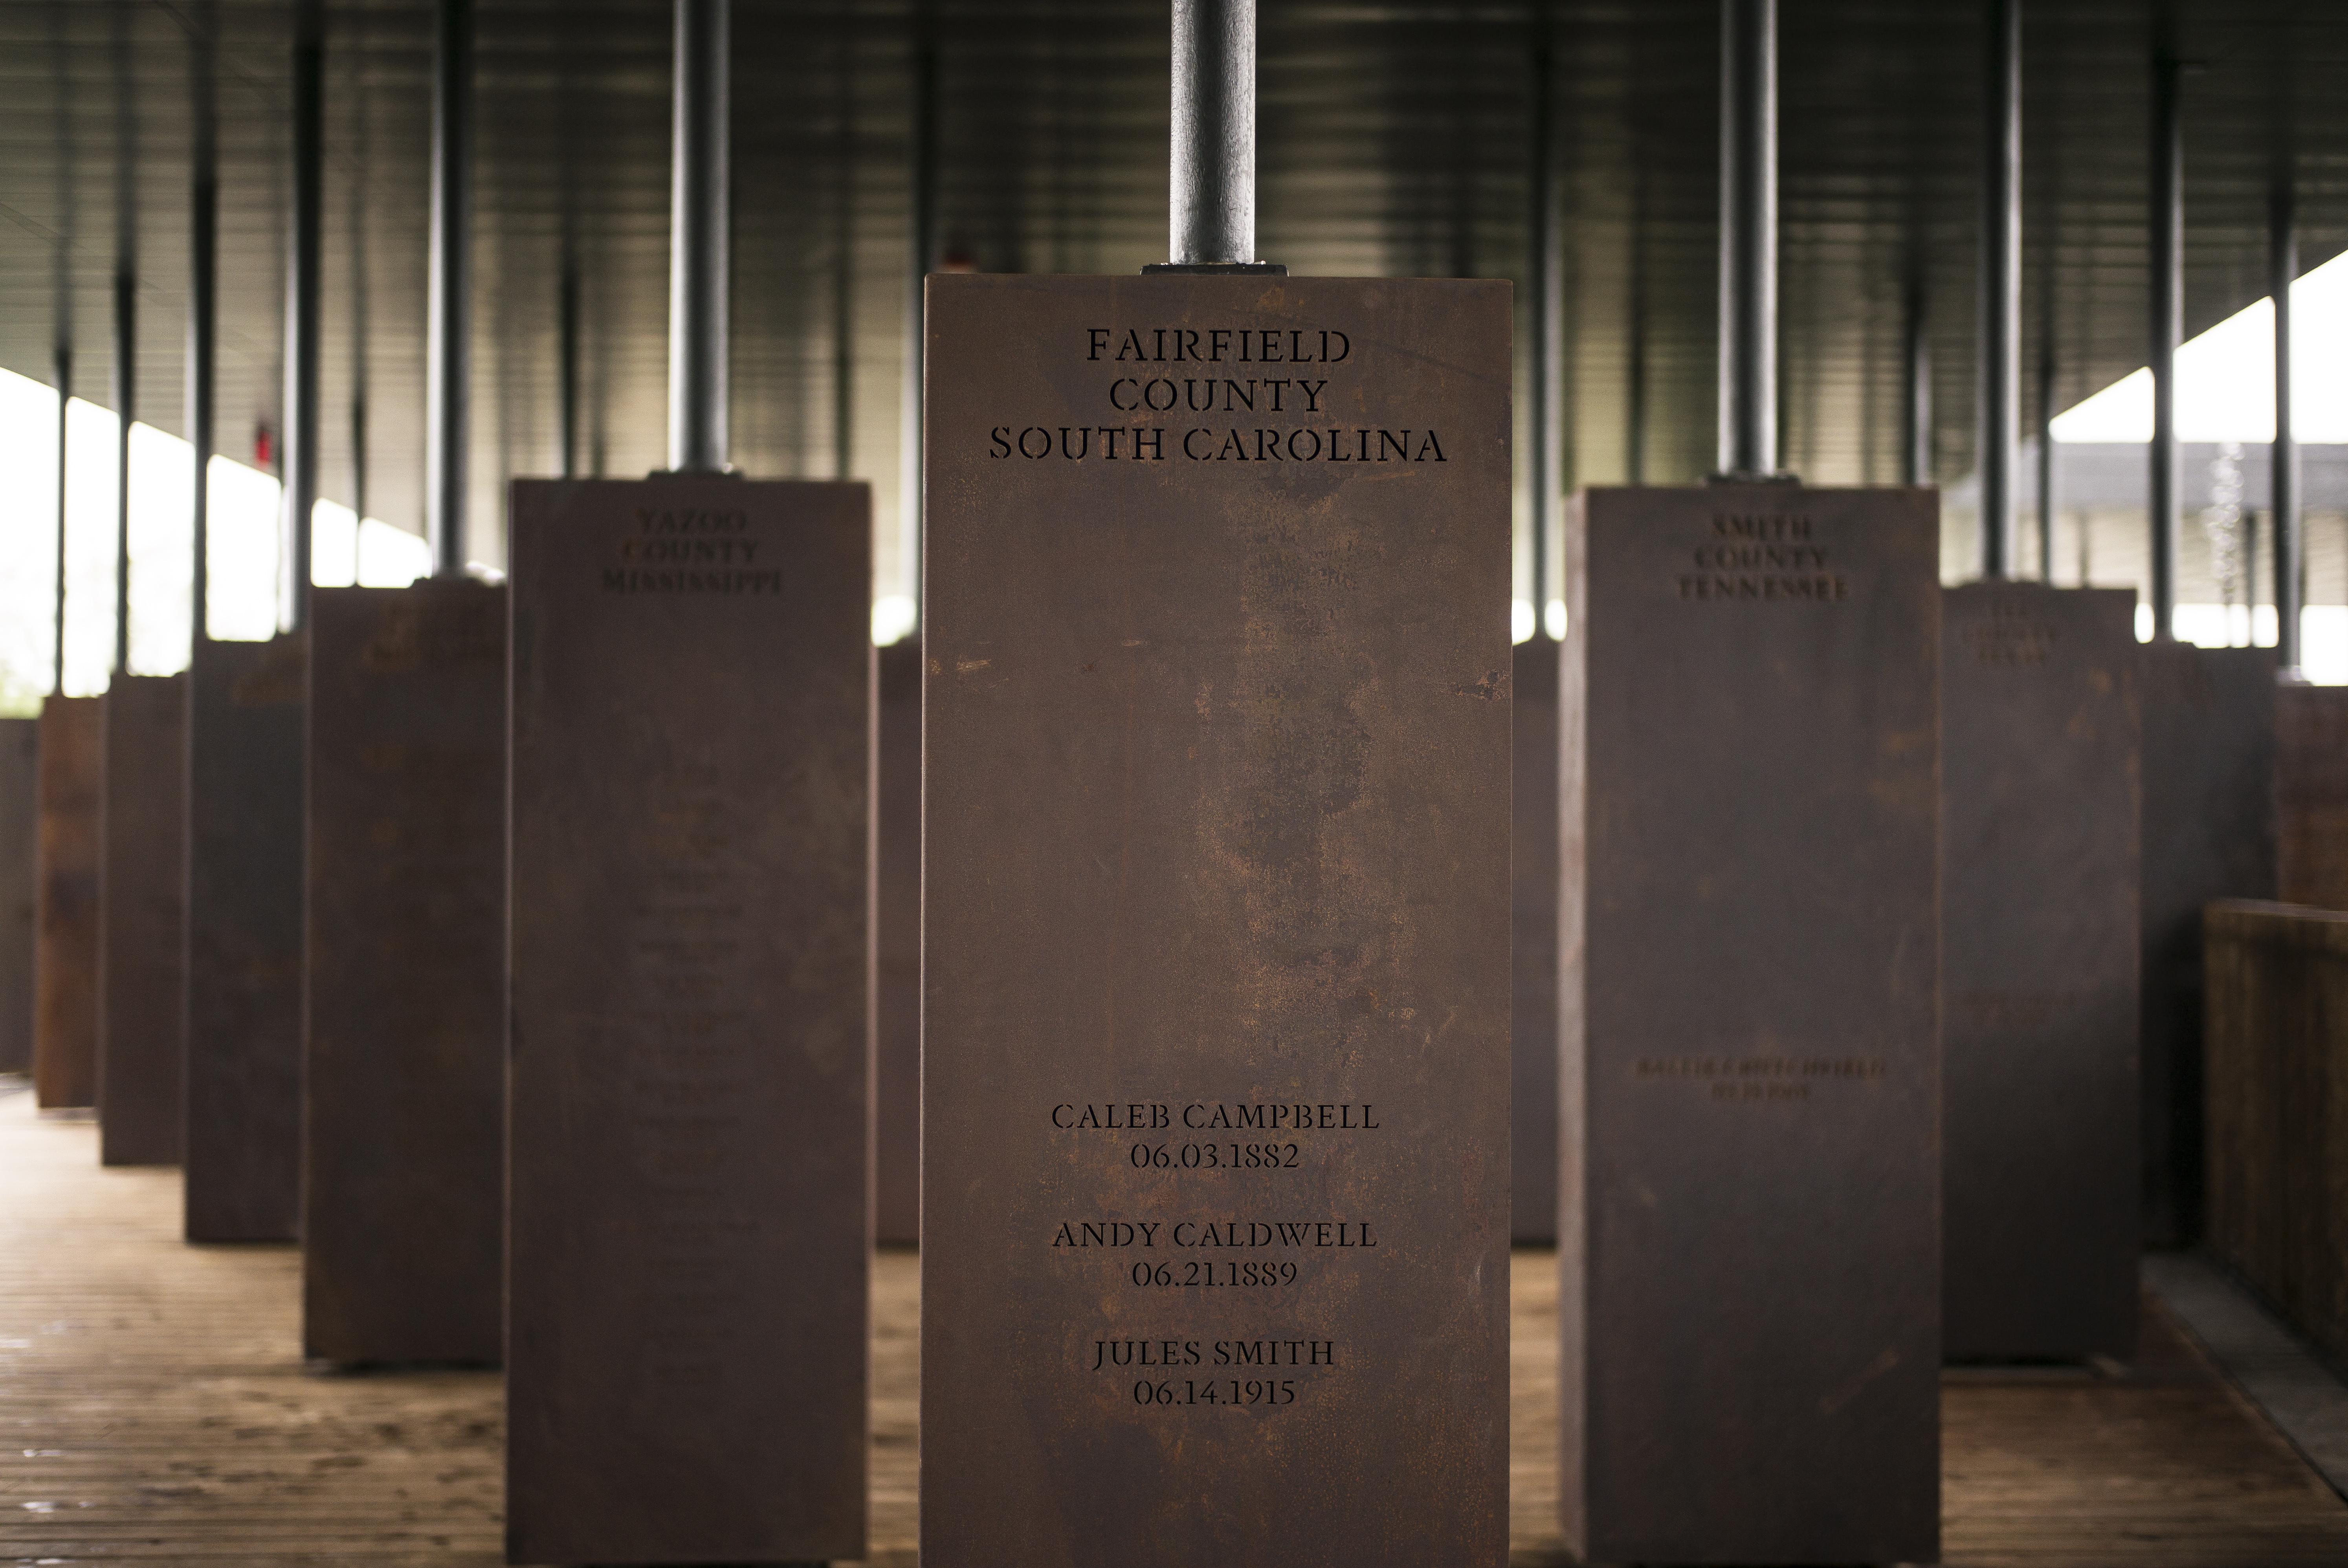 Markers held by poles connected to the ceiling of the National Memorial for Peace and Justice display locations and names on earthy brown-colored rectangular markers.